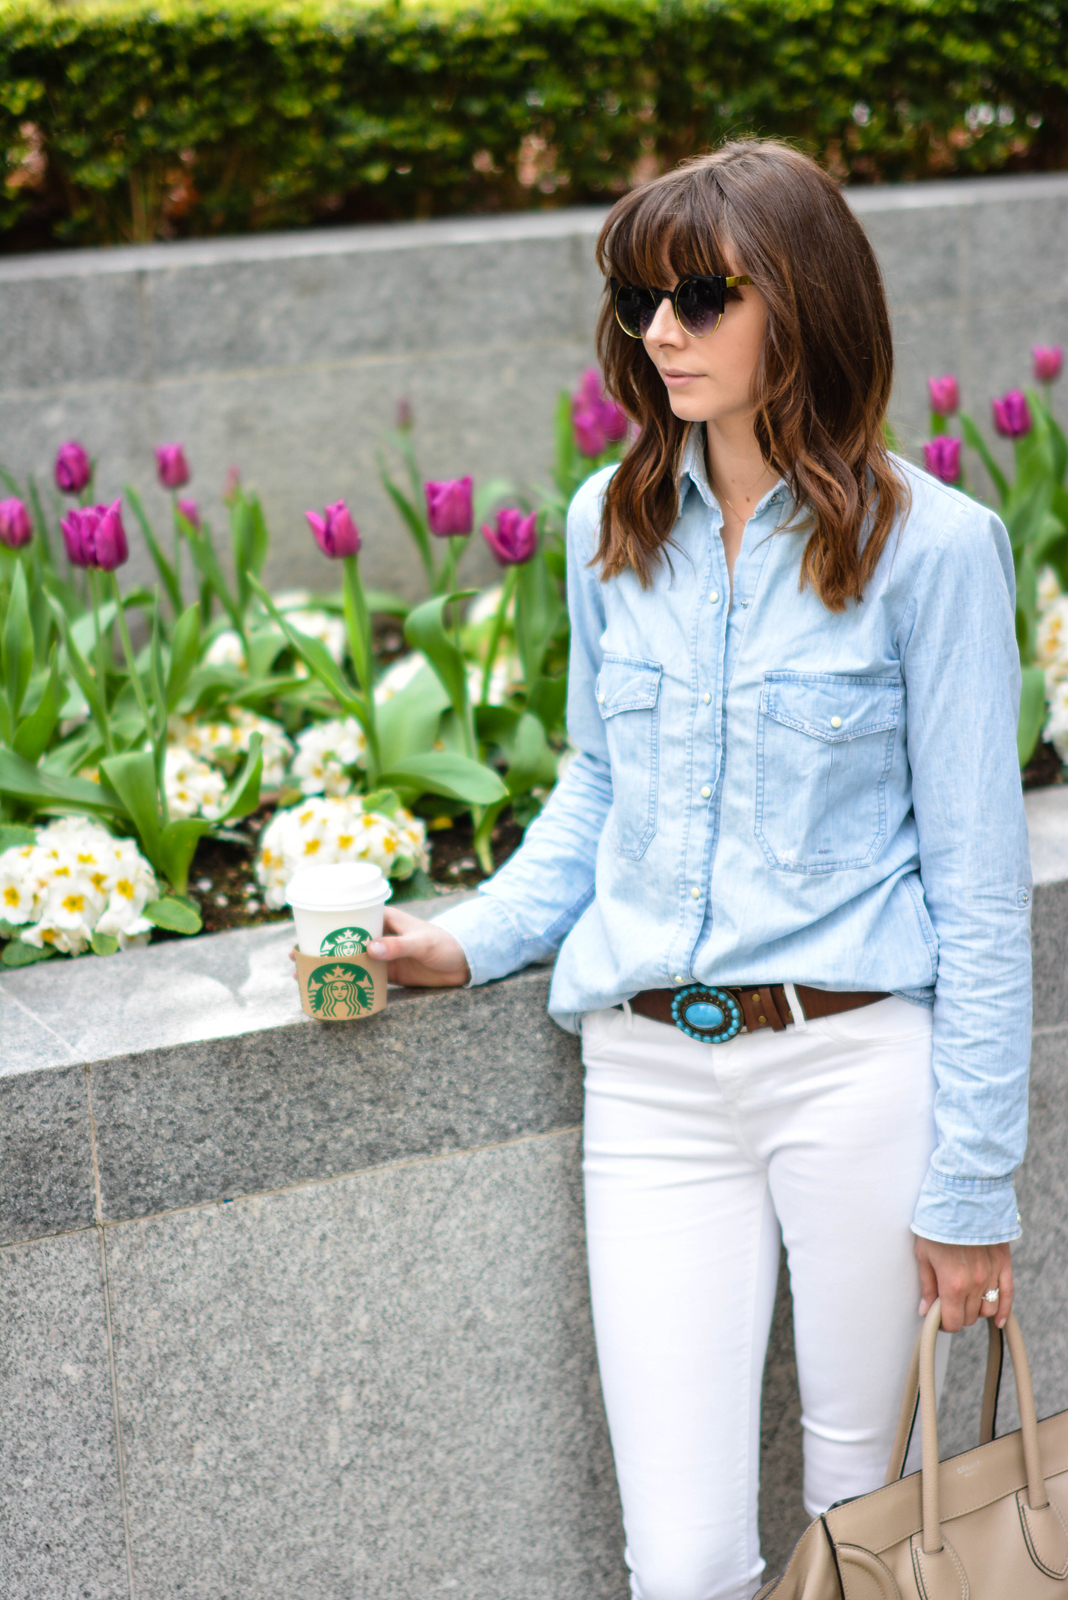 EJSTYLE - Emma Hill, River Island white skinny jeans, Topshop denim shirt, Turquoise brown leather belt, Celine mini luggage nude, cat eye sunglasses